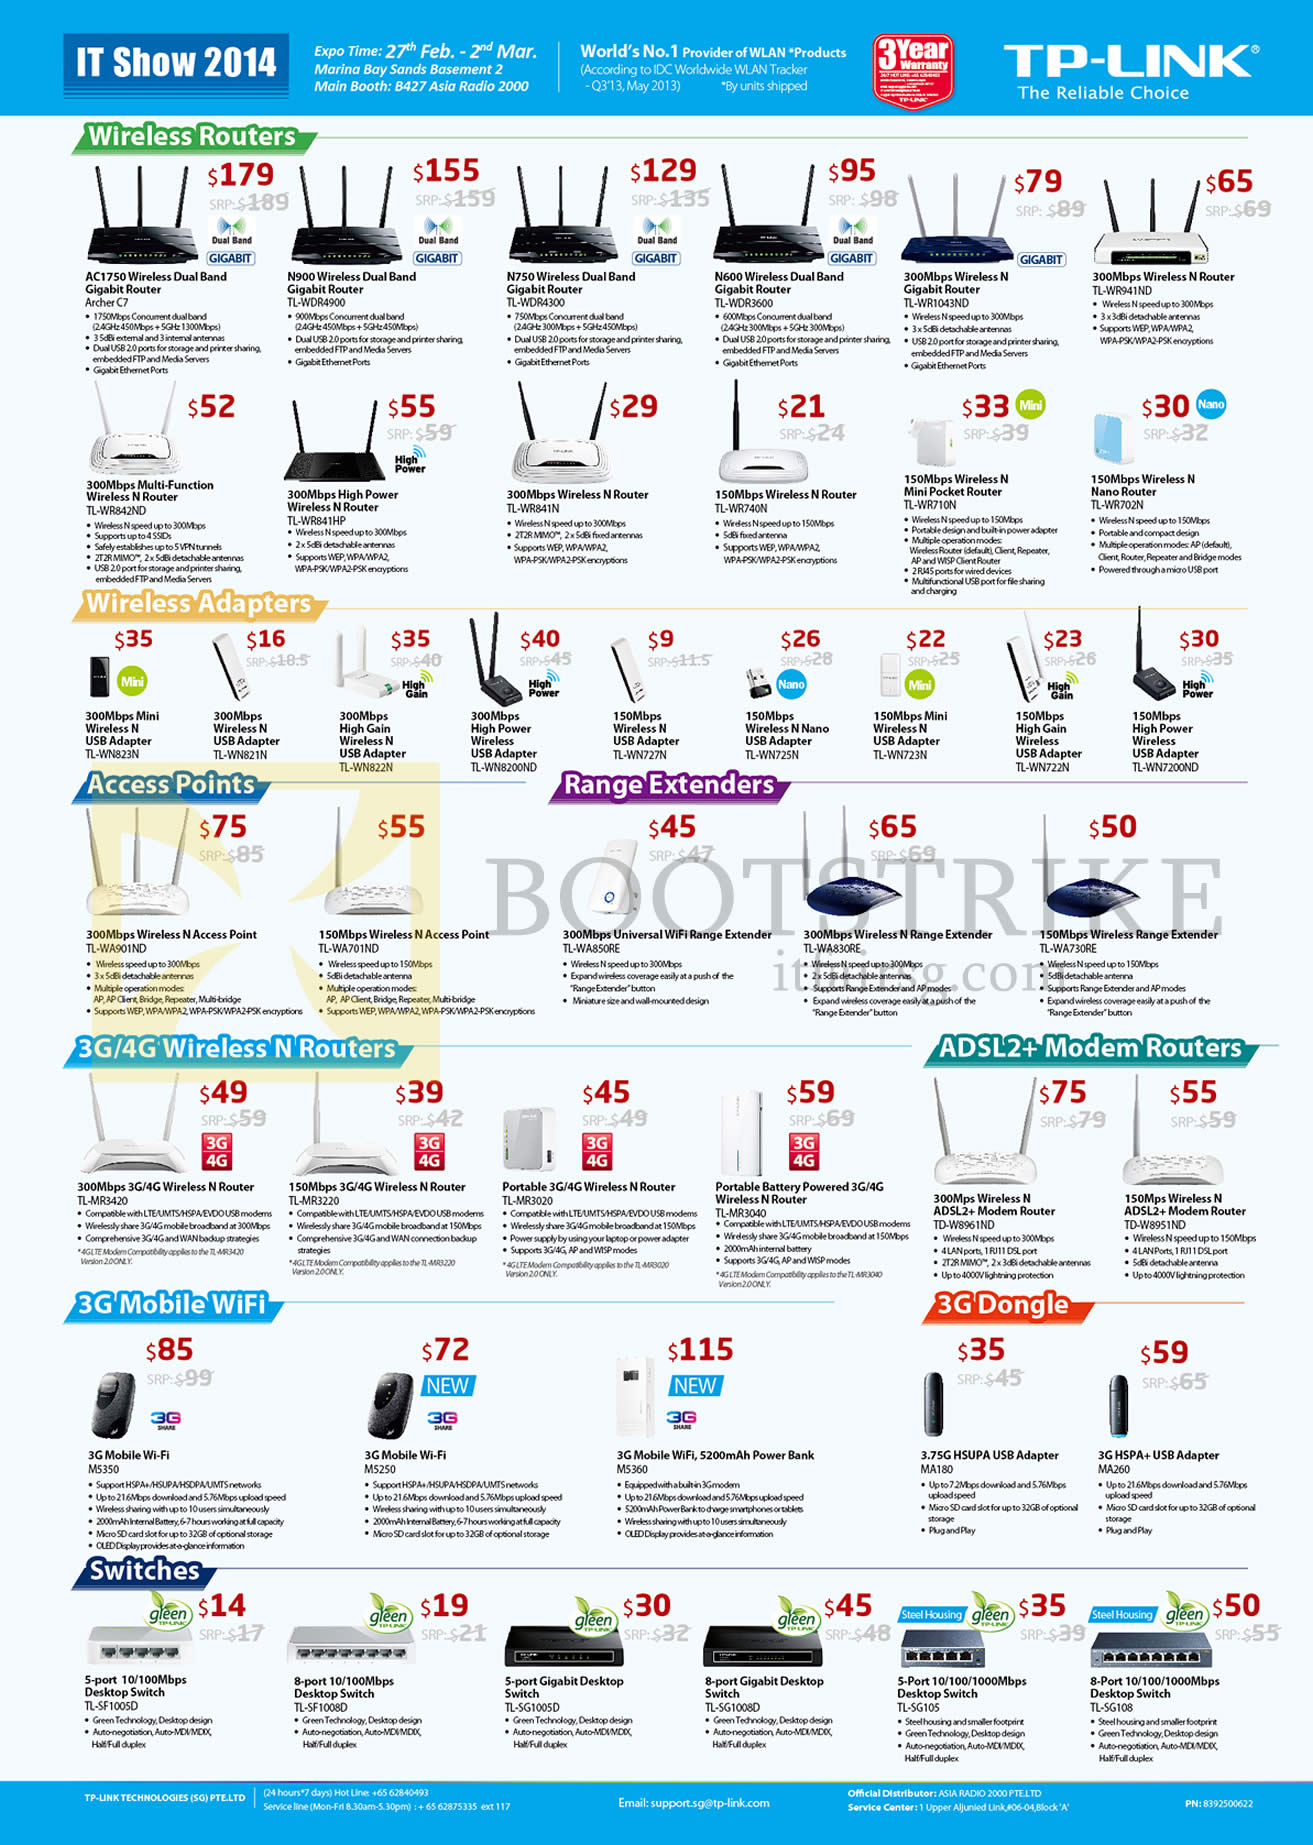 IT SHOW 2014 price list image brochure of Asia Radio TP-Link Networking Wireless Routers, Adapters USB, Access Points, Extenders, ADSL2, 3G Mobile Wifi, Switches, 3G Dongle